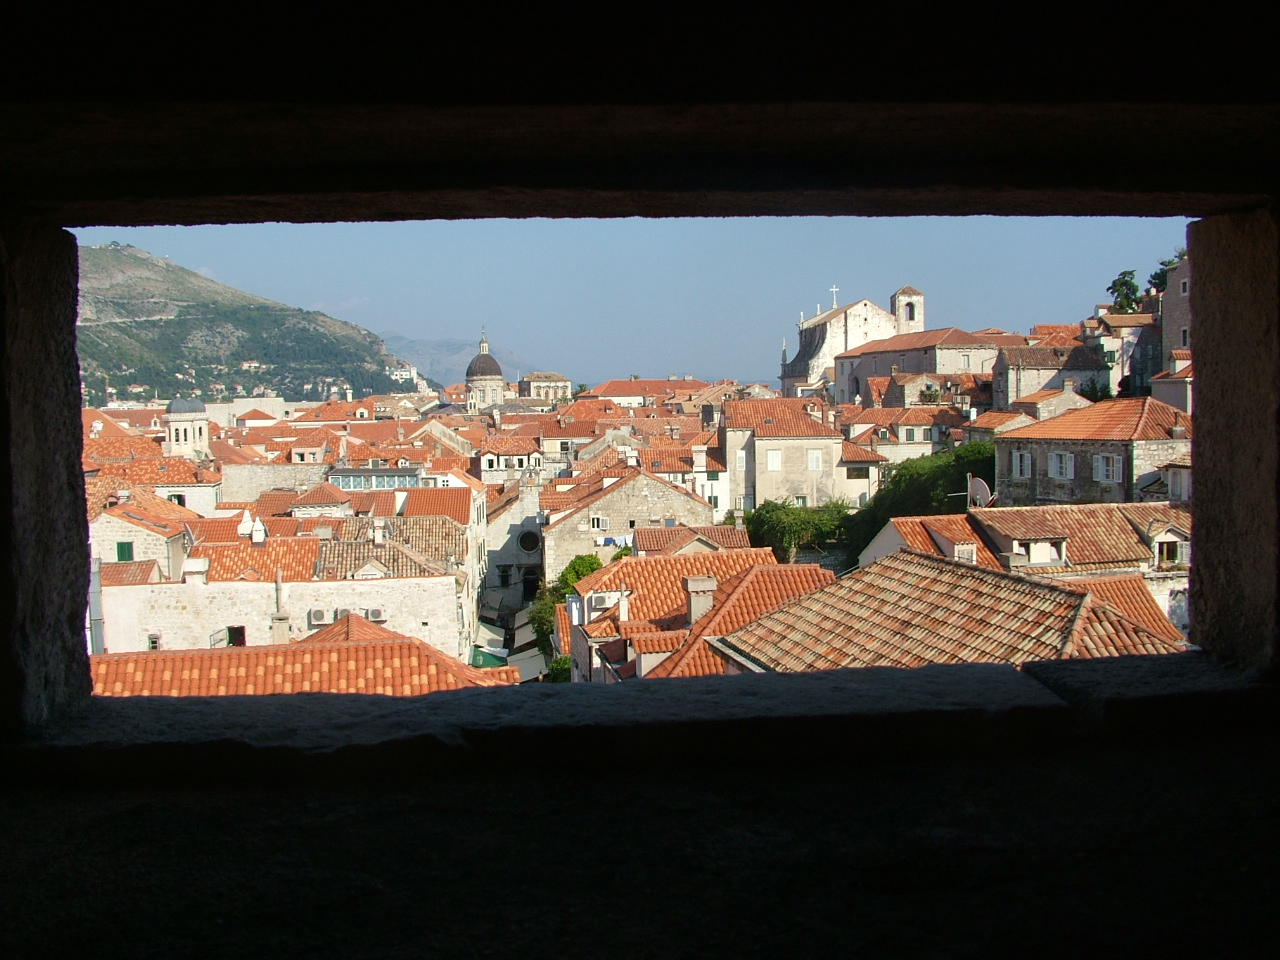 Dubrovnik old town from one of the wall forts